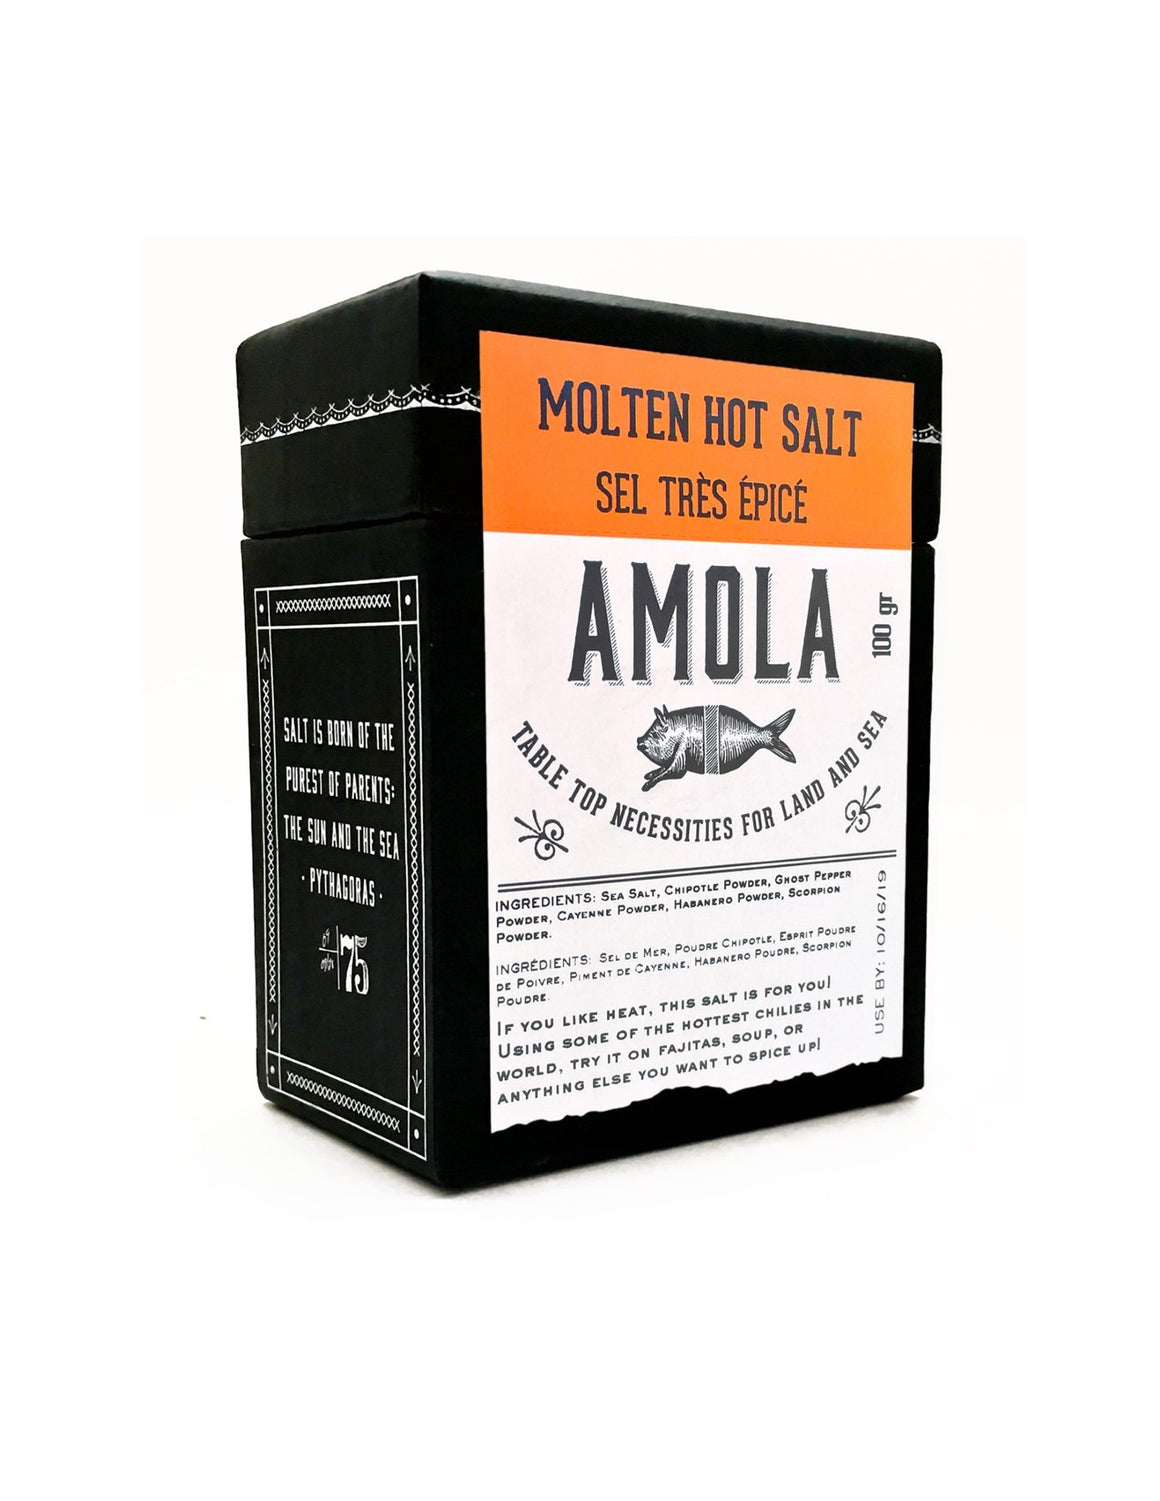 Amola - Molten Hot Salt